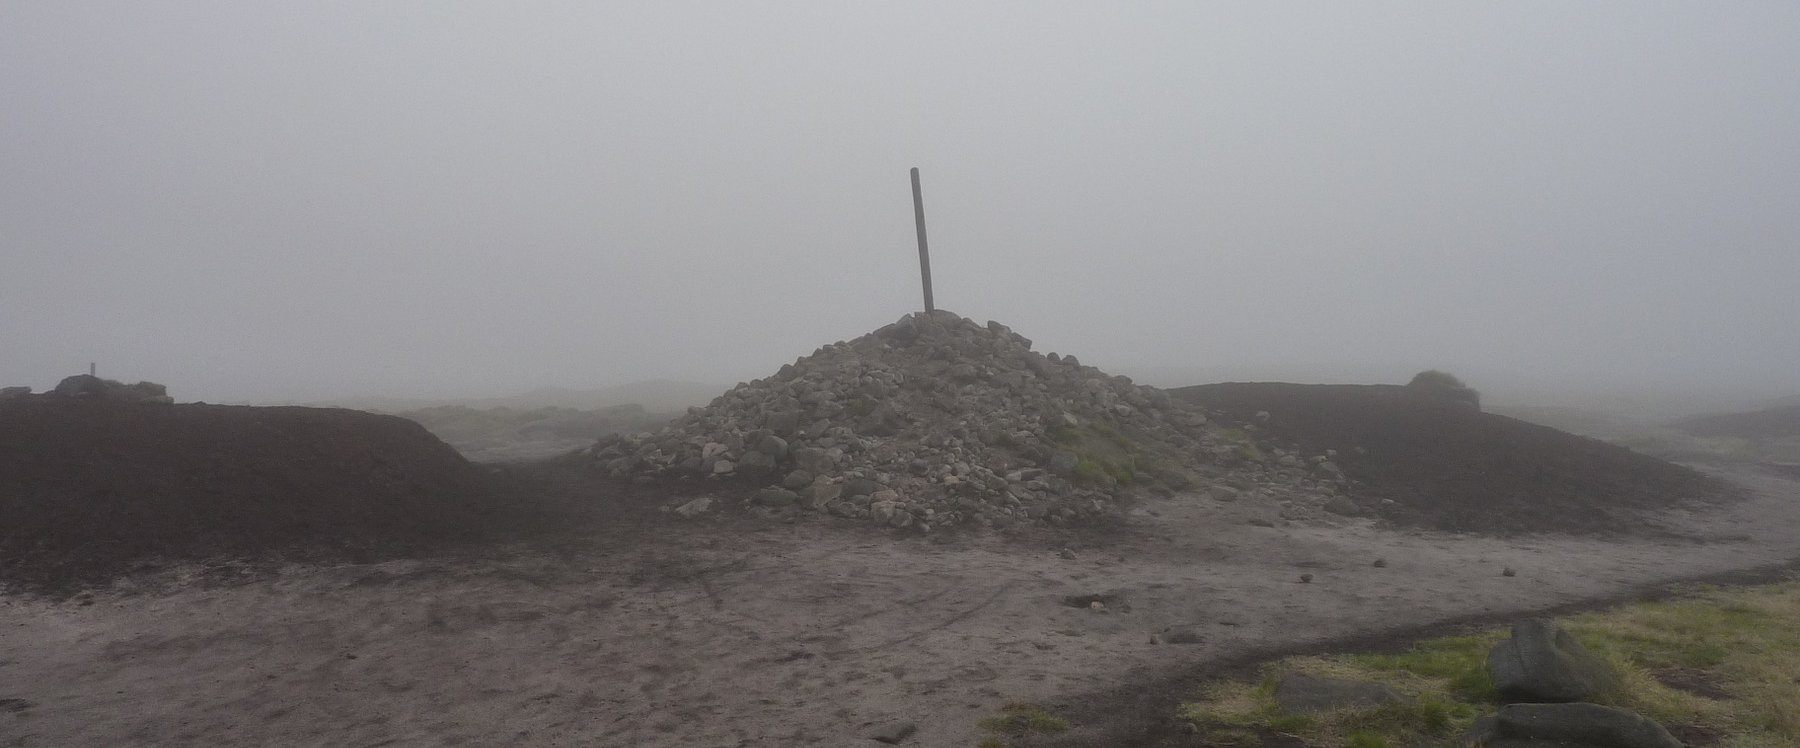 The huge cairn on the summit of Bleaklow head